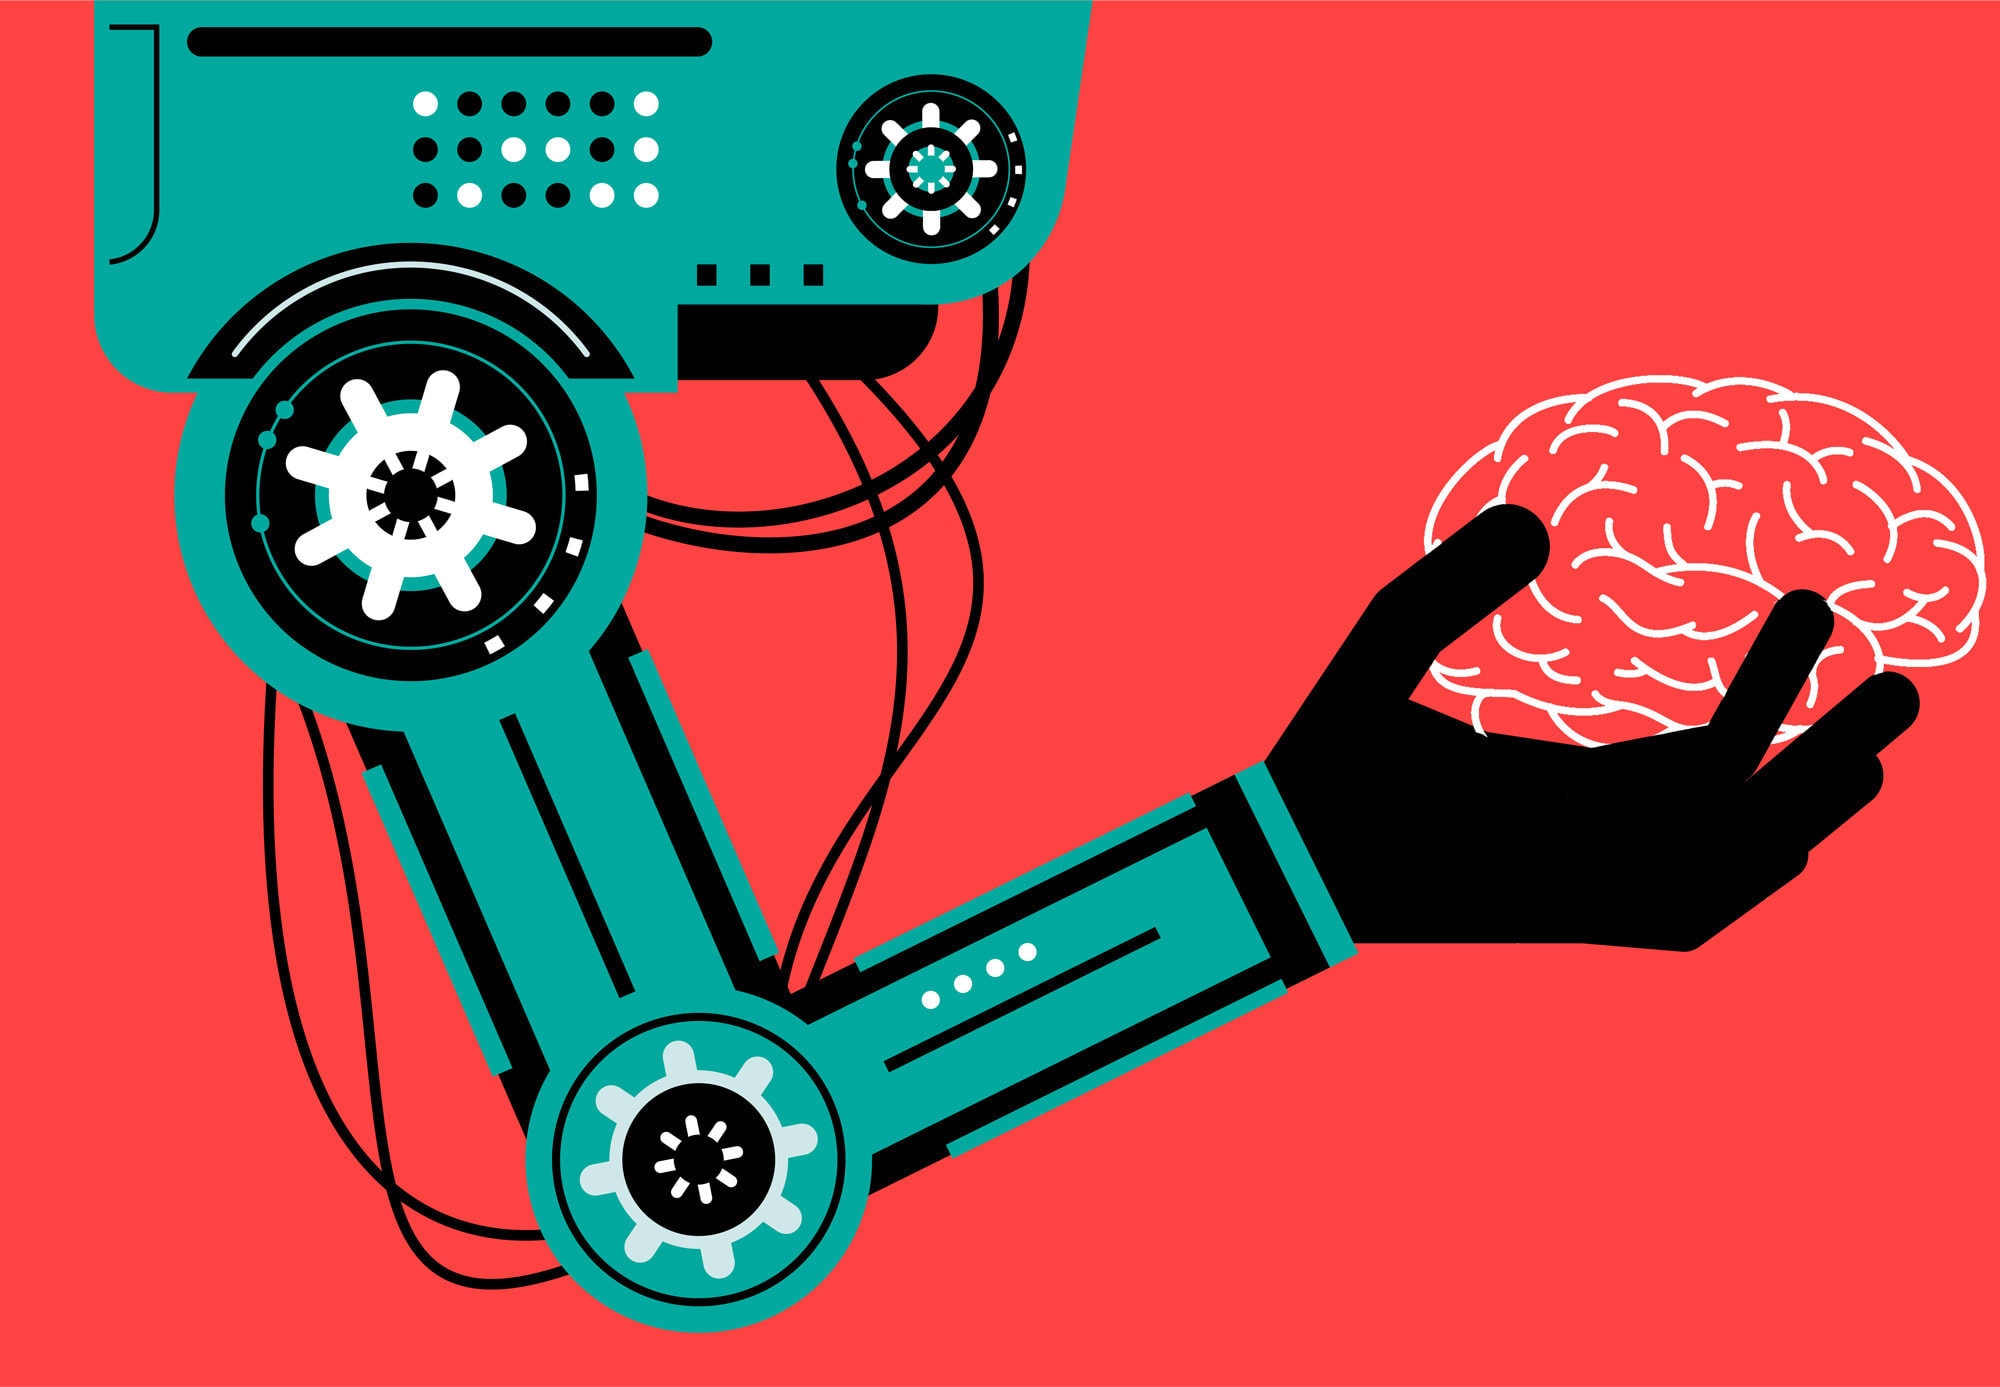 A mind-controlled robot arm doesn't have to mean brain implants